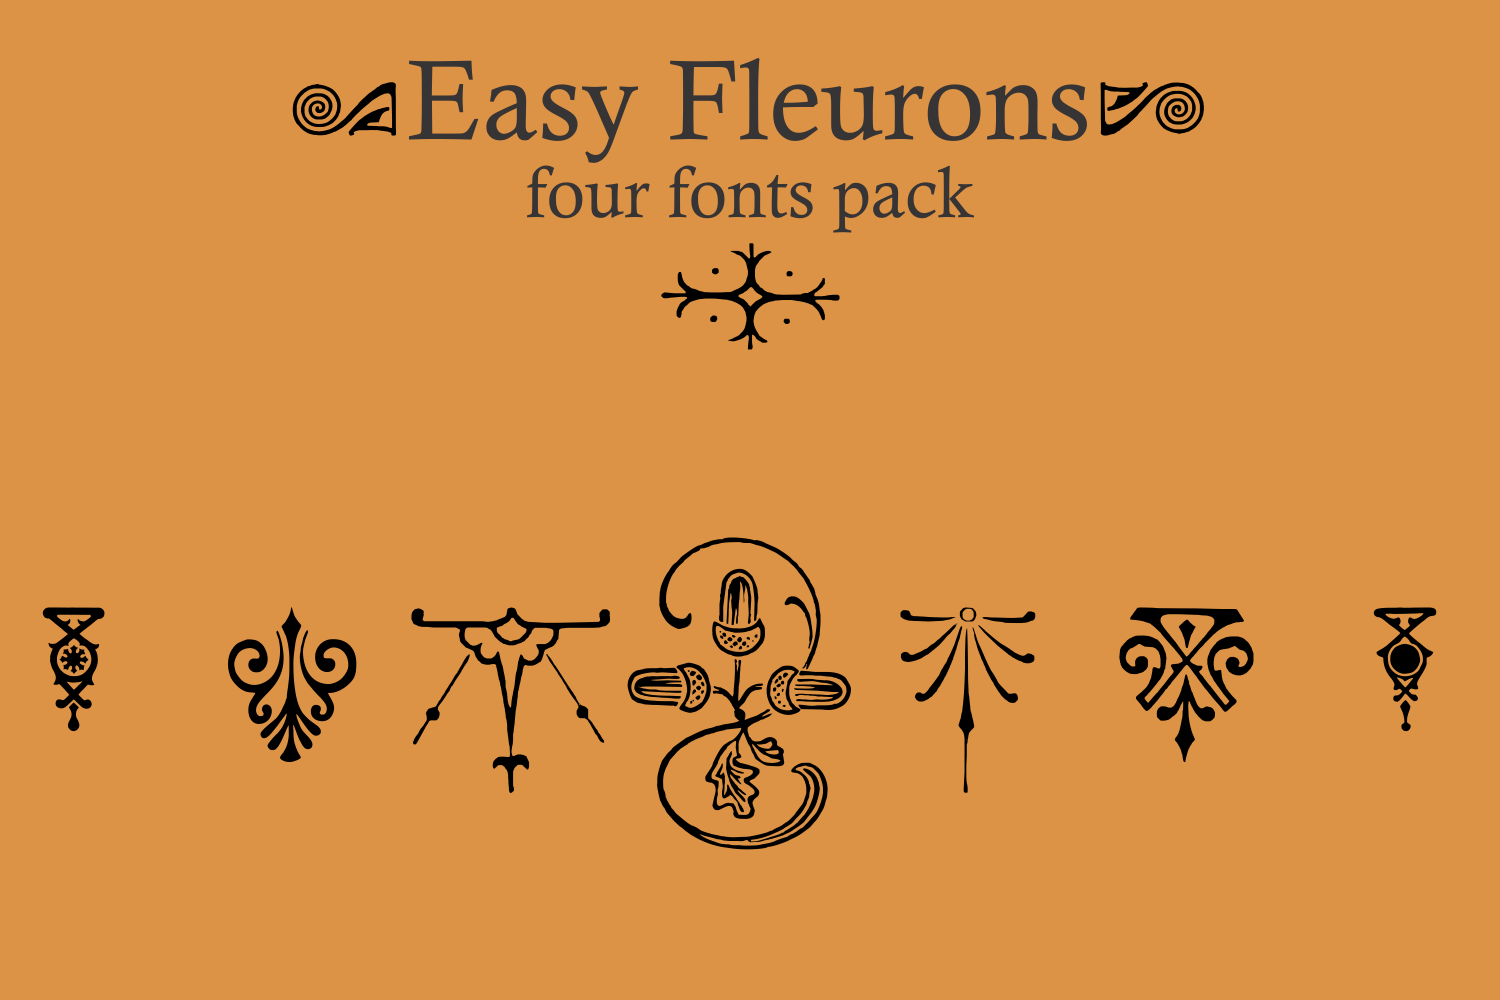 Easy Fleurons Pack (four fonts) example image 3